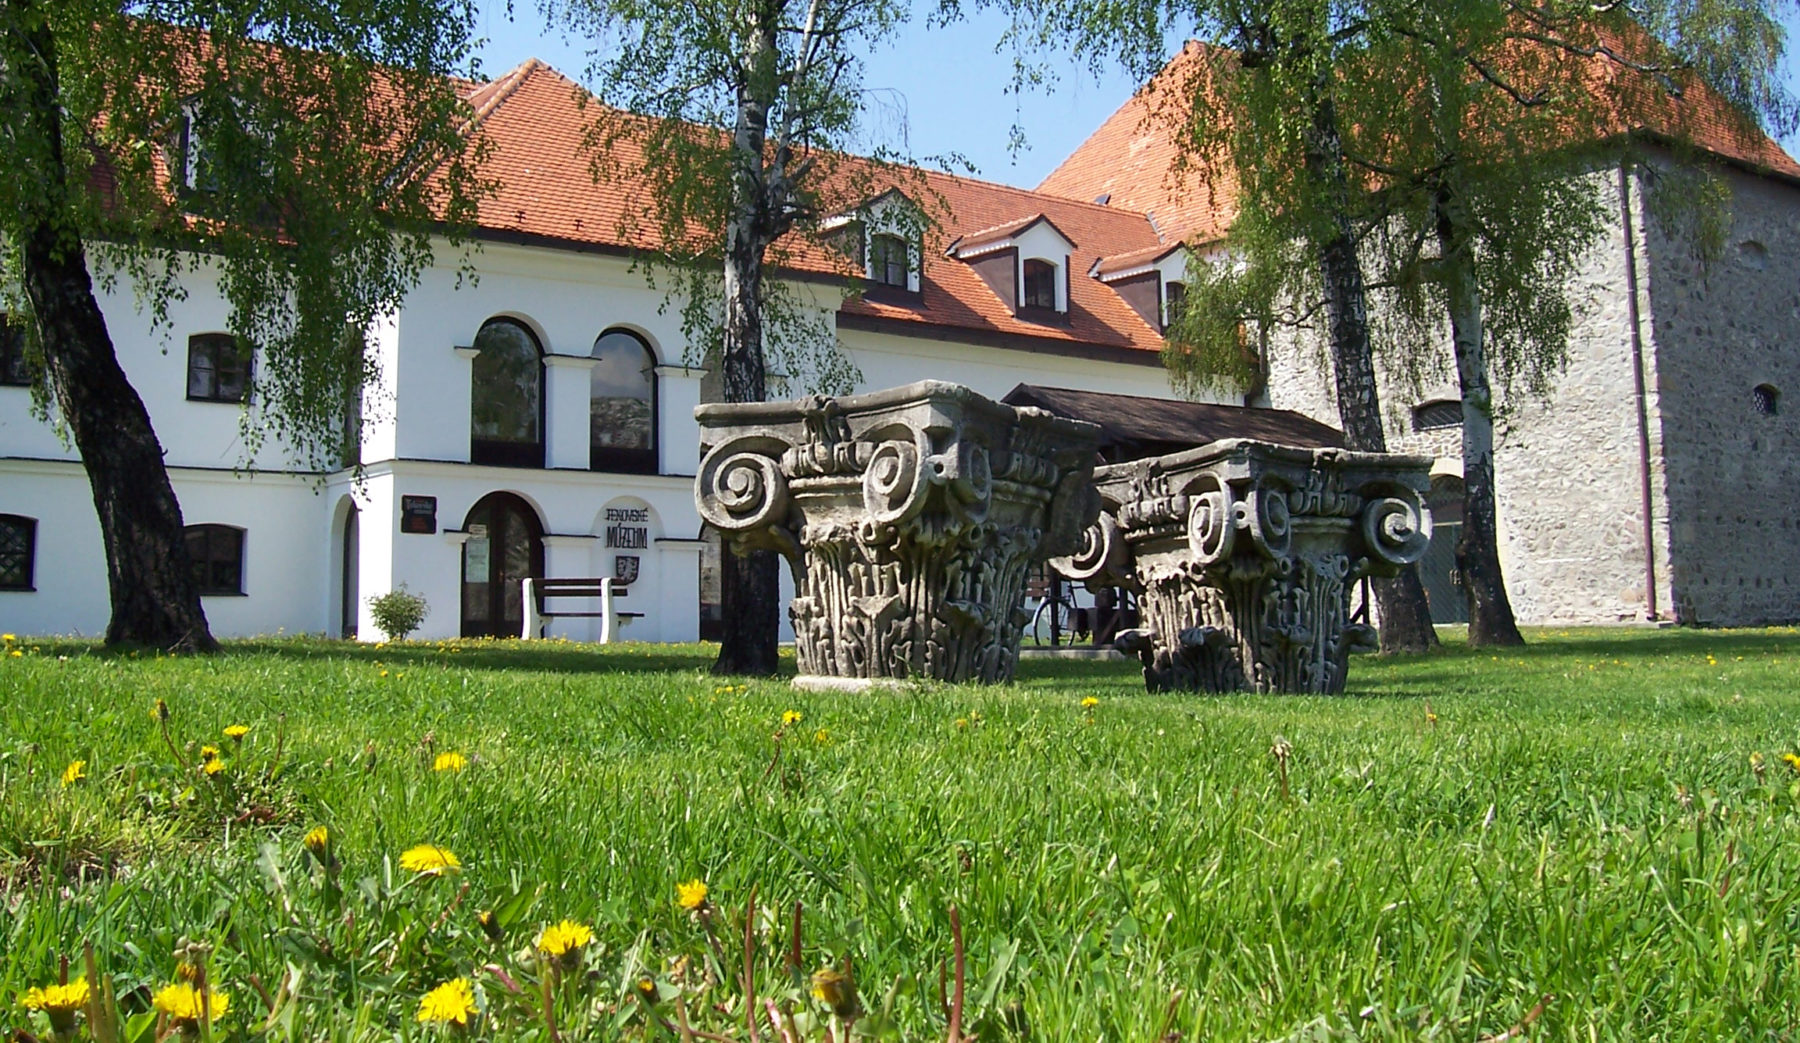 Tekov museum in Levice